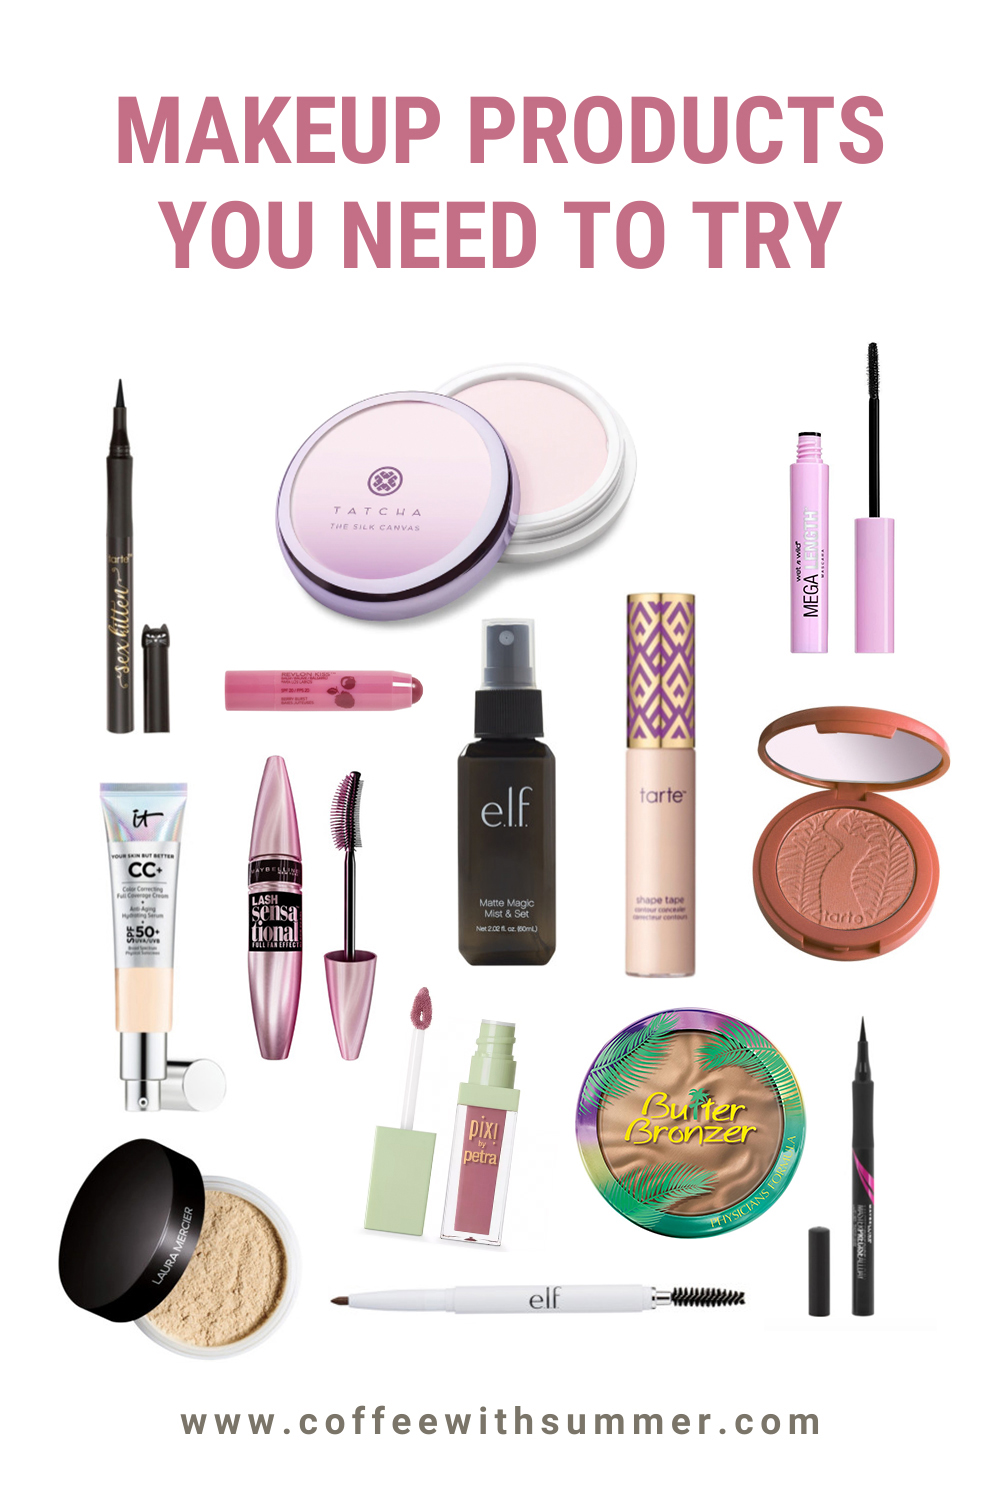 Makeup Products You Need To Try